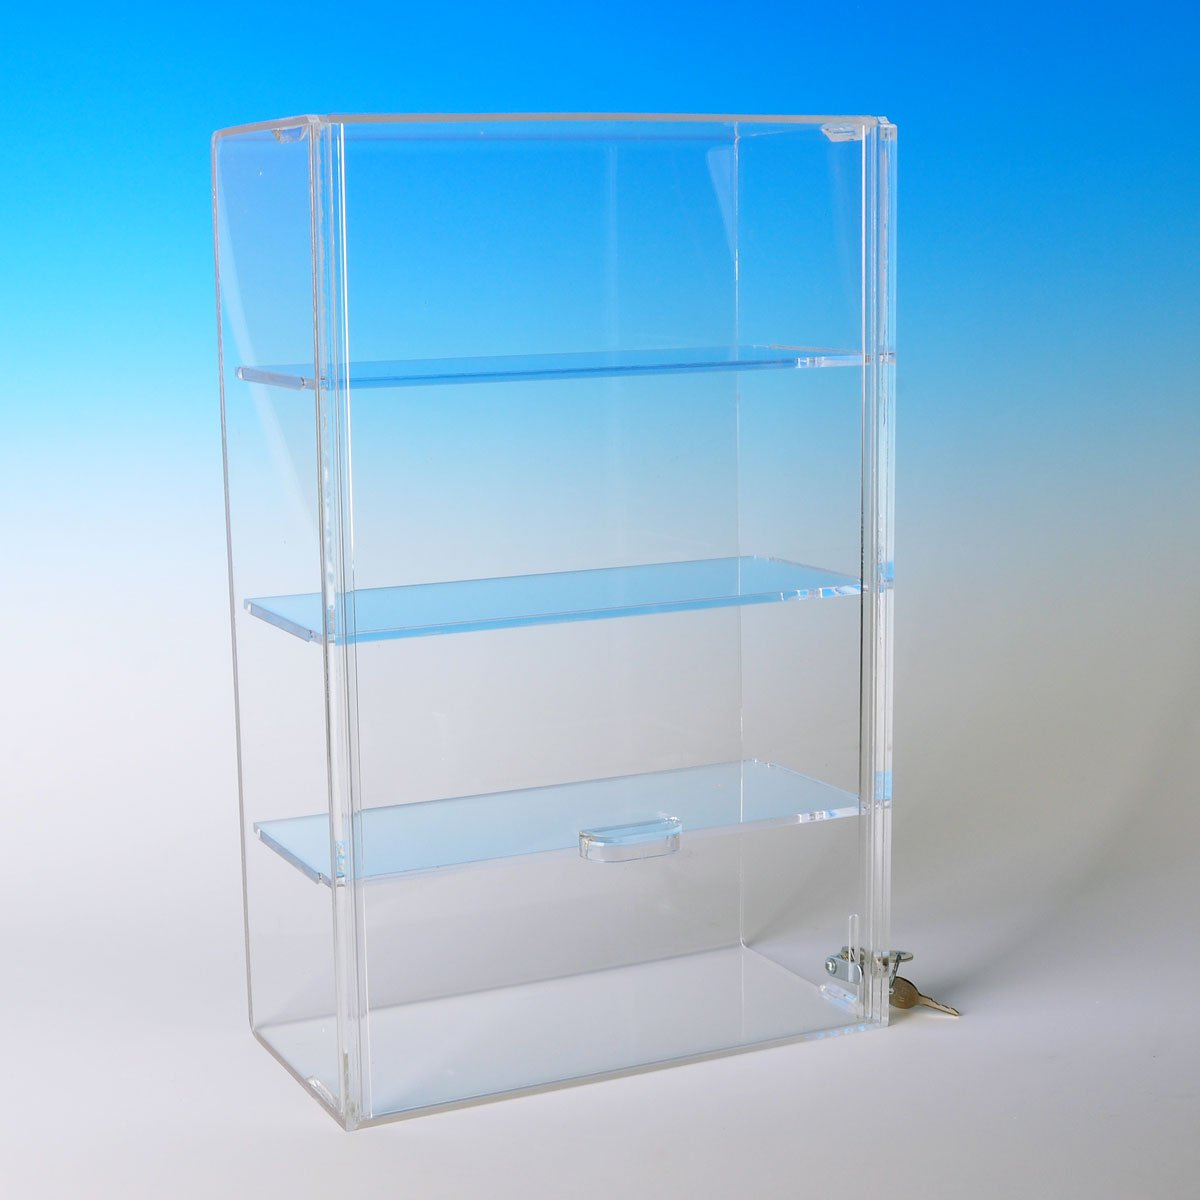 Display Case with Locking Back Door | Acrylic Case (SD153 (w/3 shelves) - 15-3/4H x 10-1/4W x 5-1/4D) by Choice Acrylic Displays